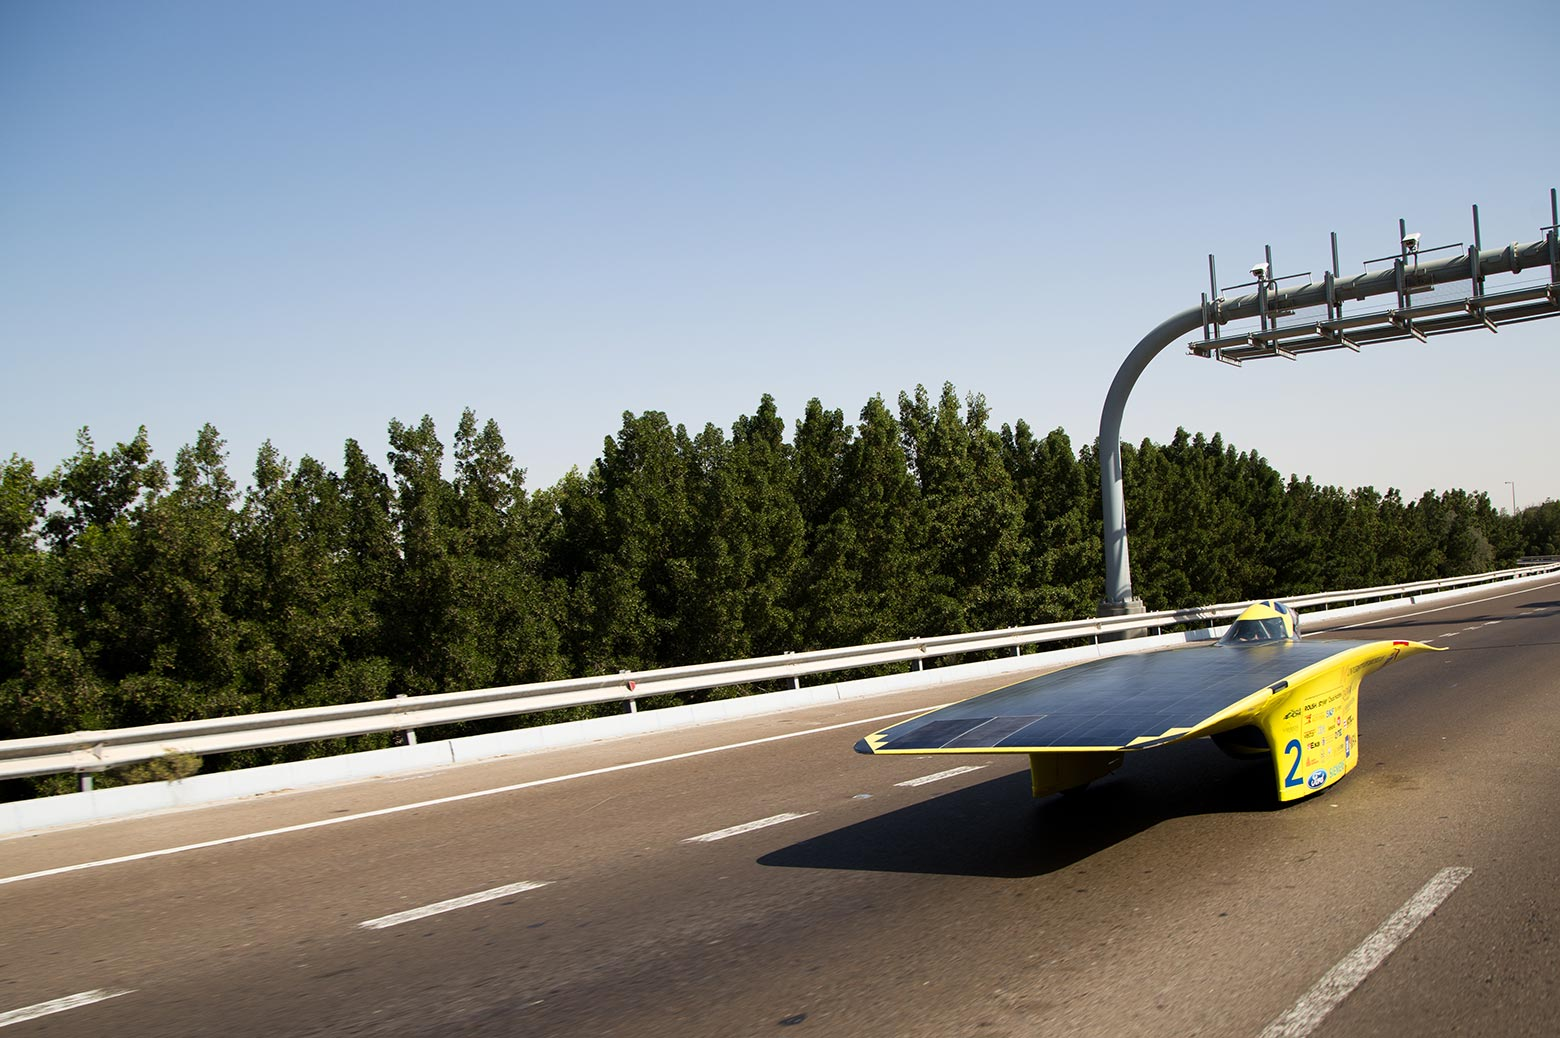 Solar powered car cruises down the road